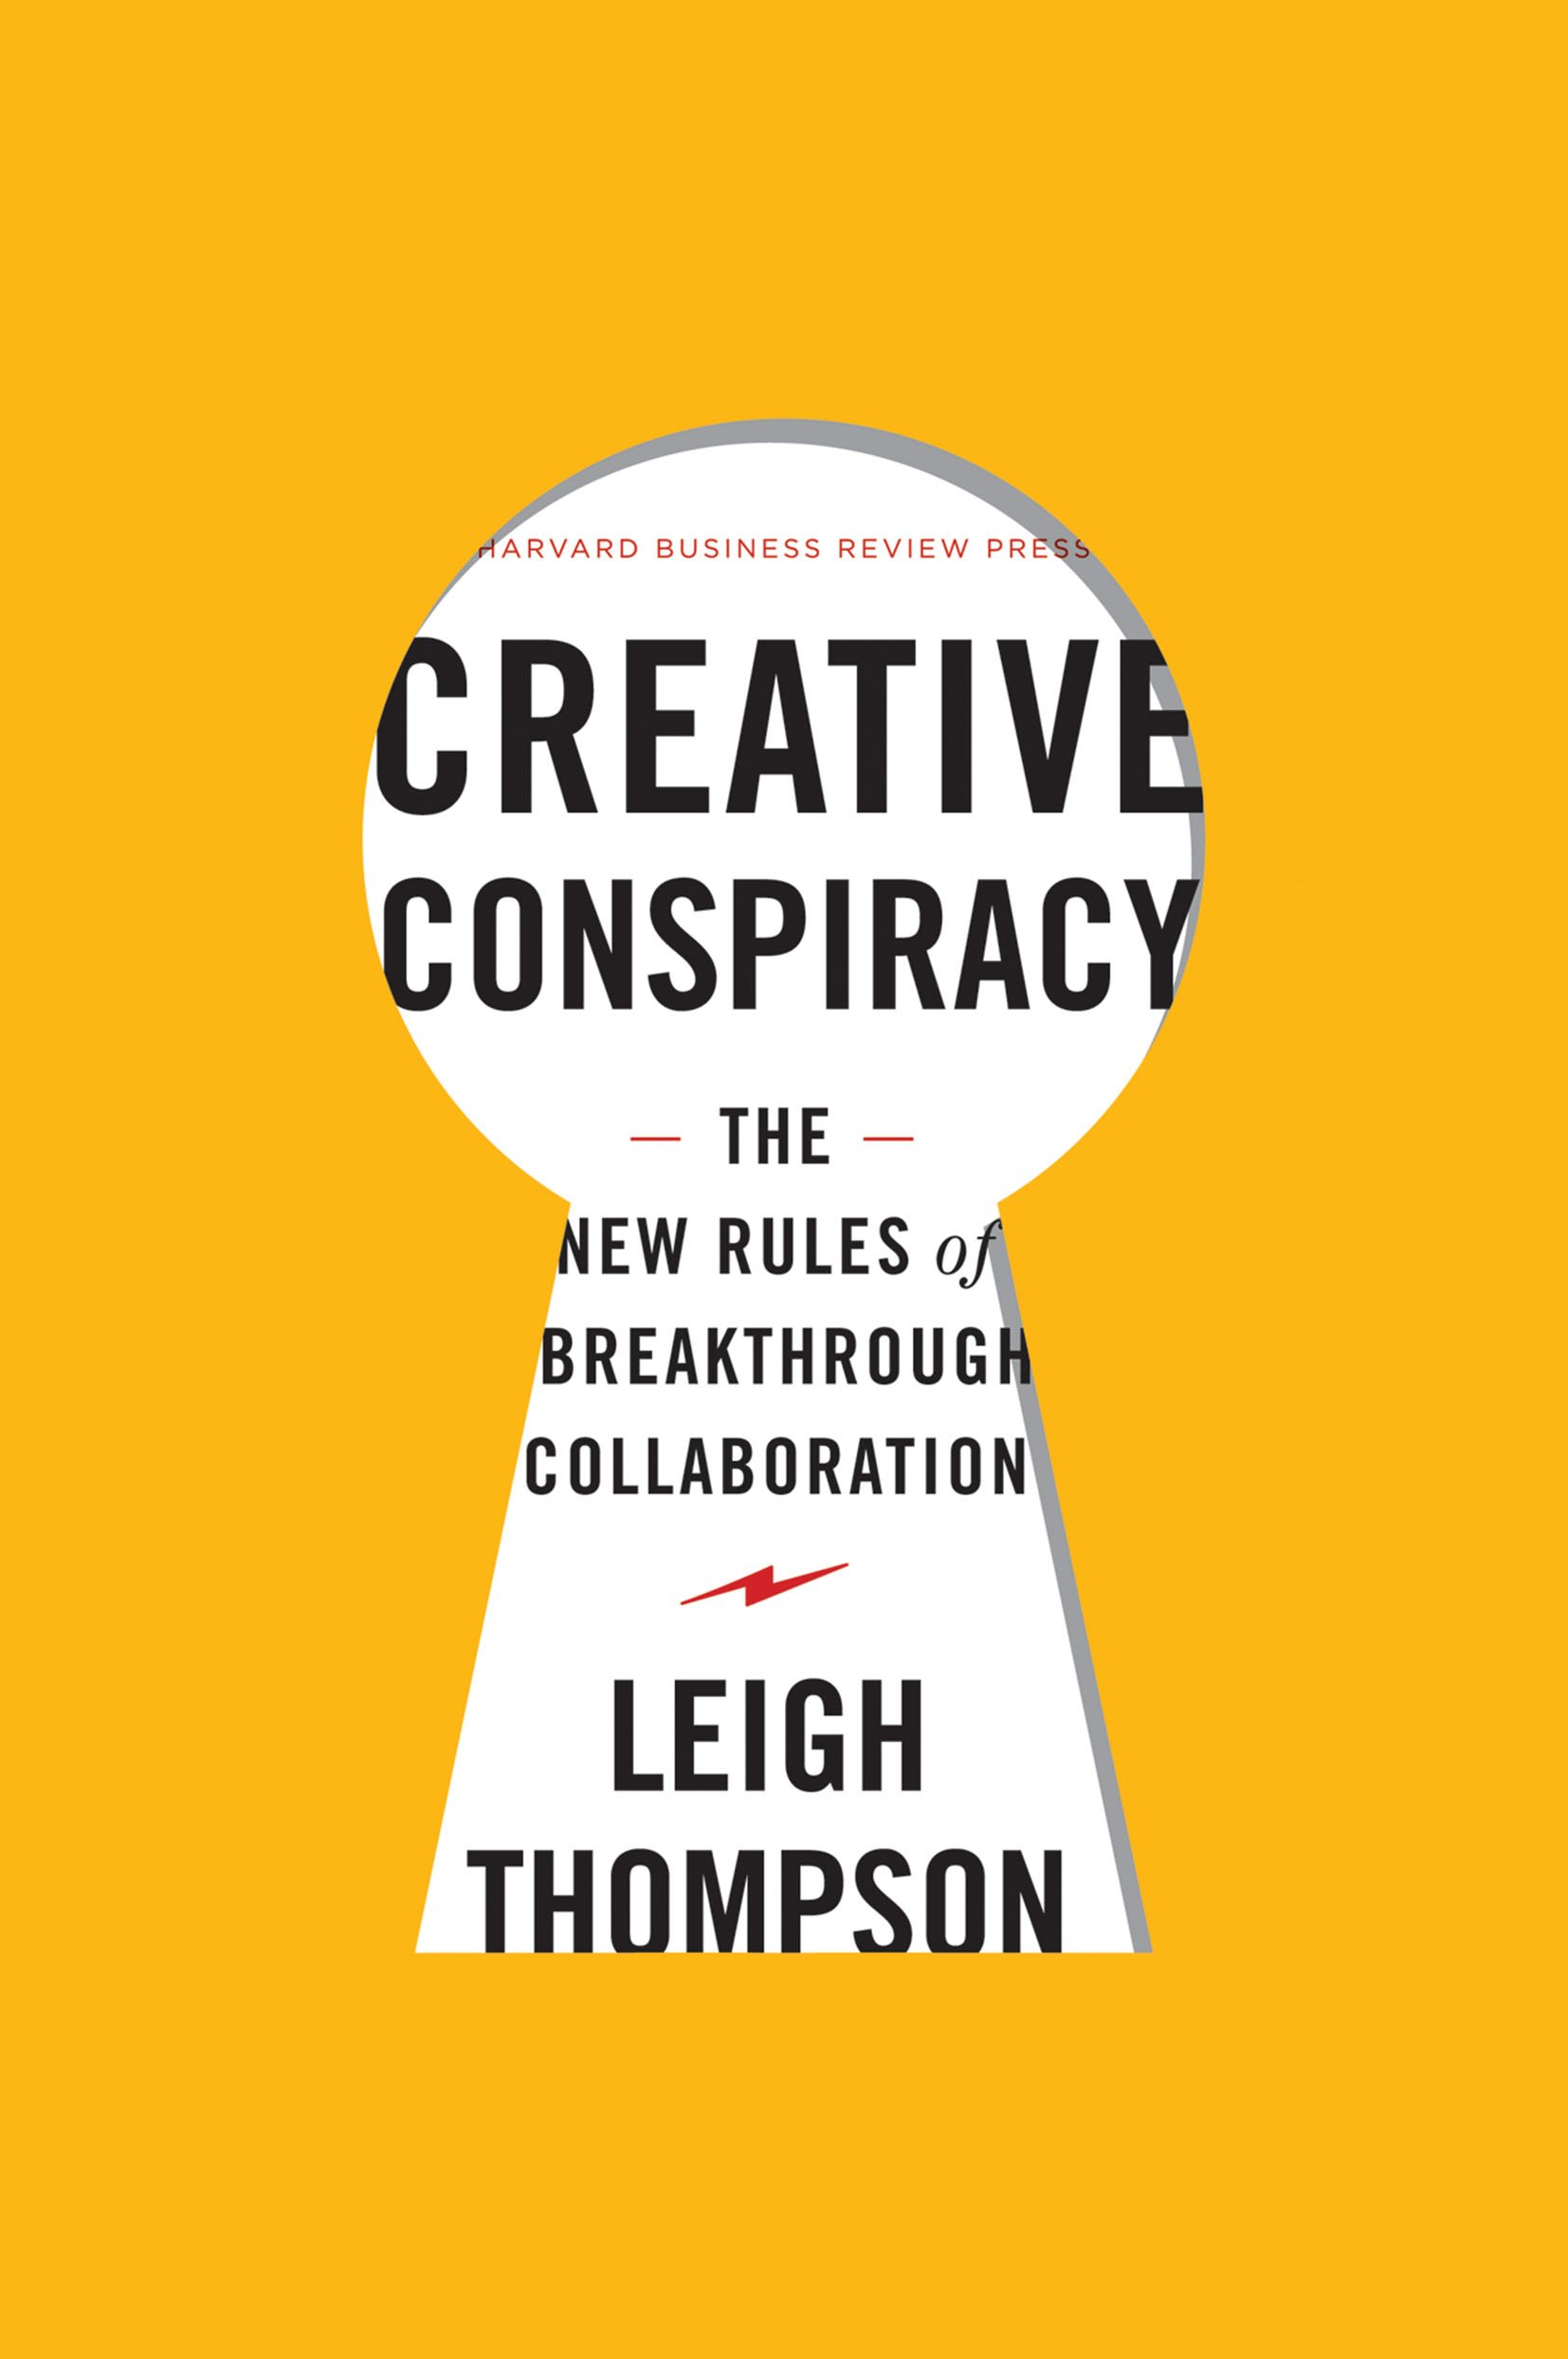 Creative conspiracy the new rules of breakthrough collaboration creative conspiracy the new rules of breakthrough collaboration leigh thompson 9781422173343 amazon books fandeluxe Choice Image